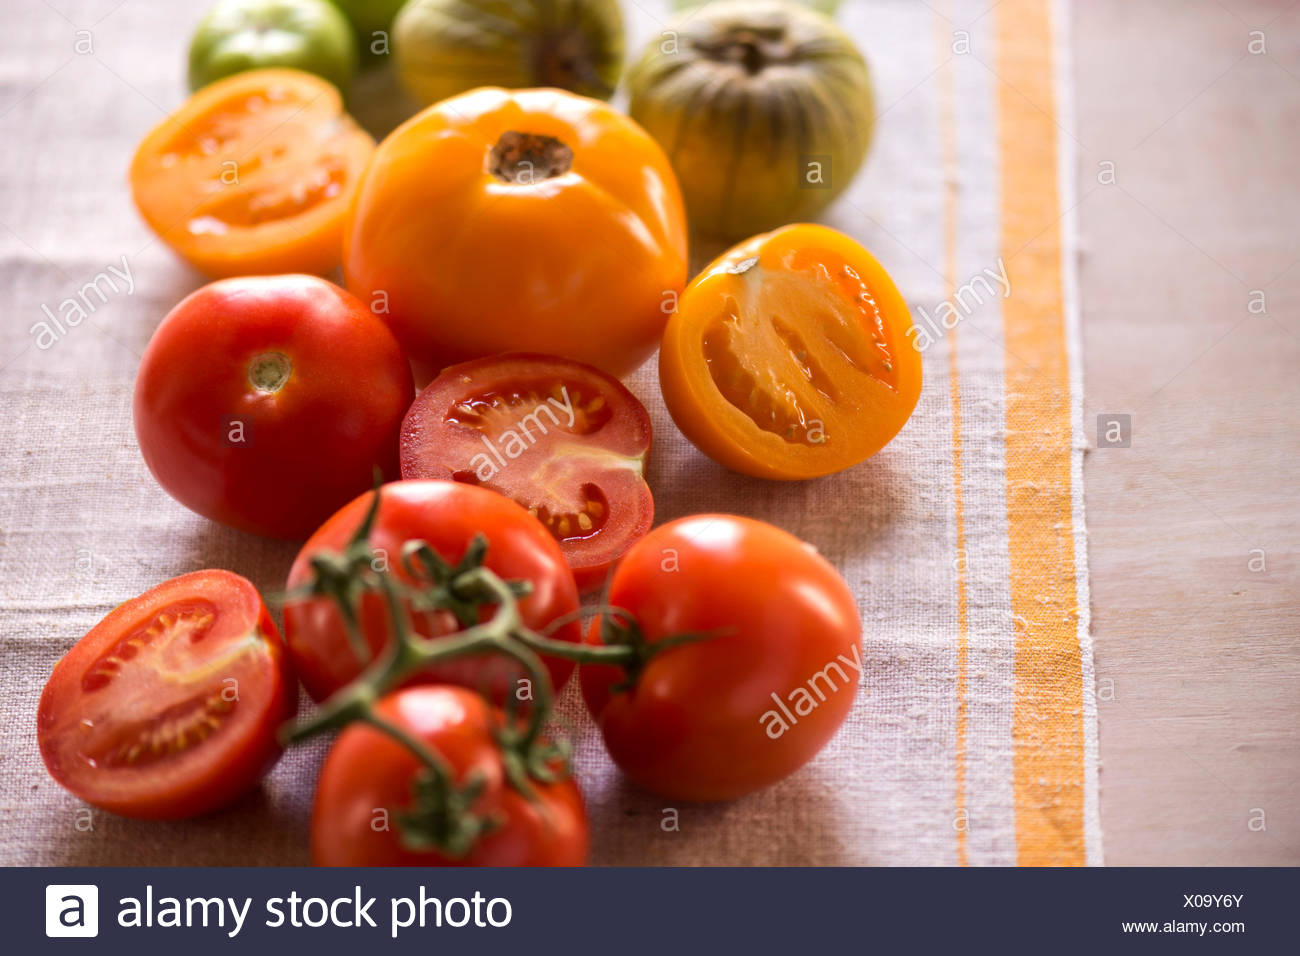 Variety of tomatoes, whole and cut, on rustic linen. Bright, summery feel. - Stock Image